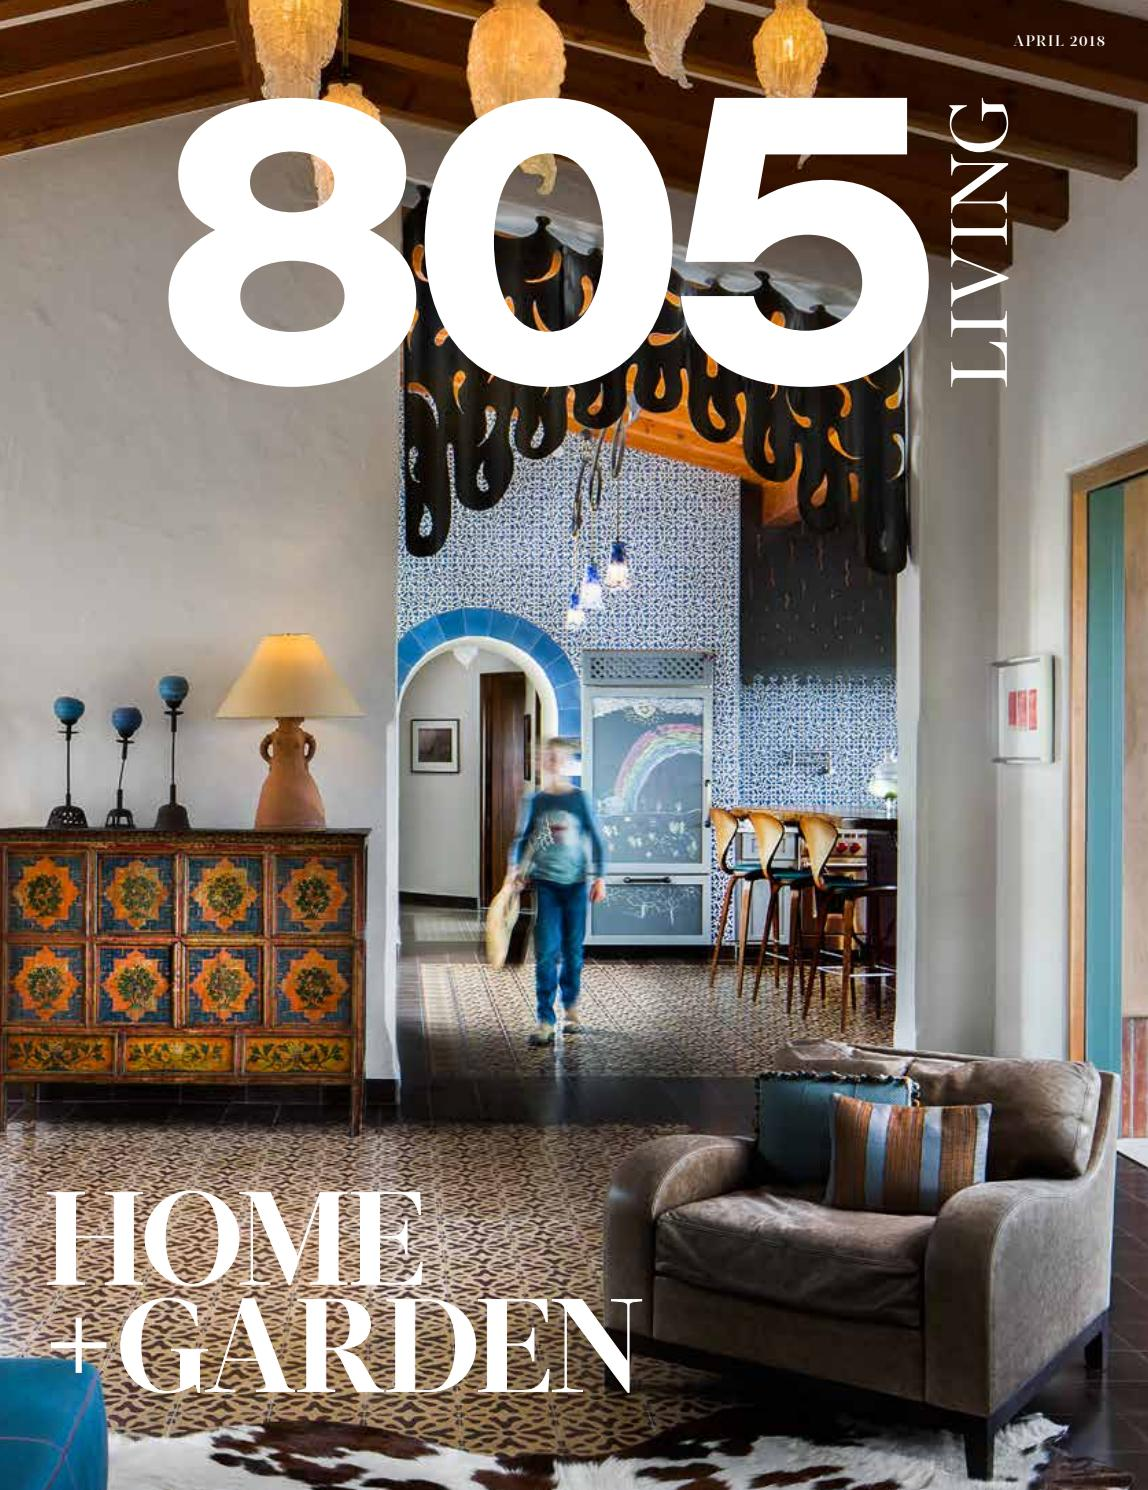 805 living april 2018 by 805 living issuu